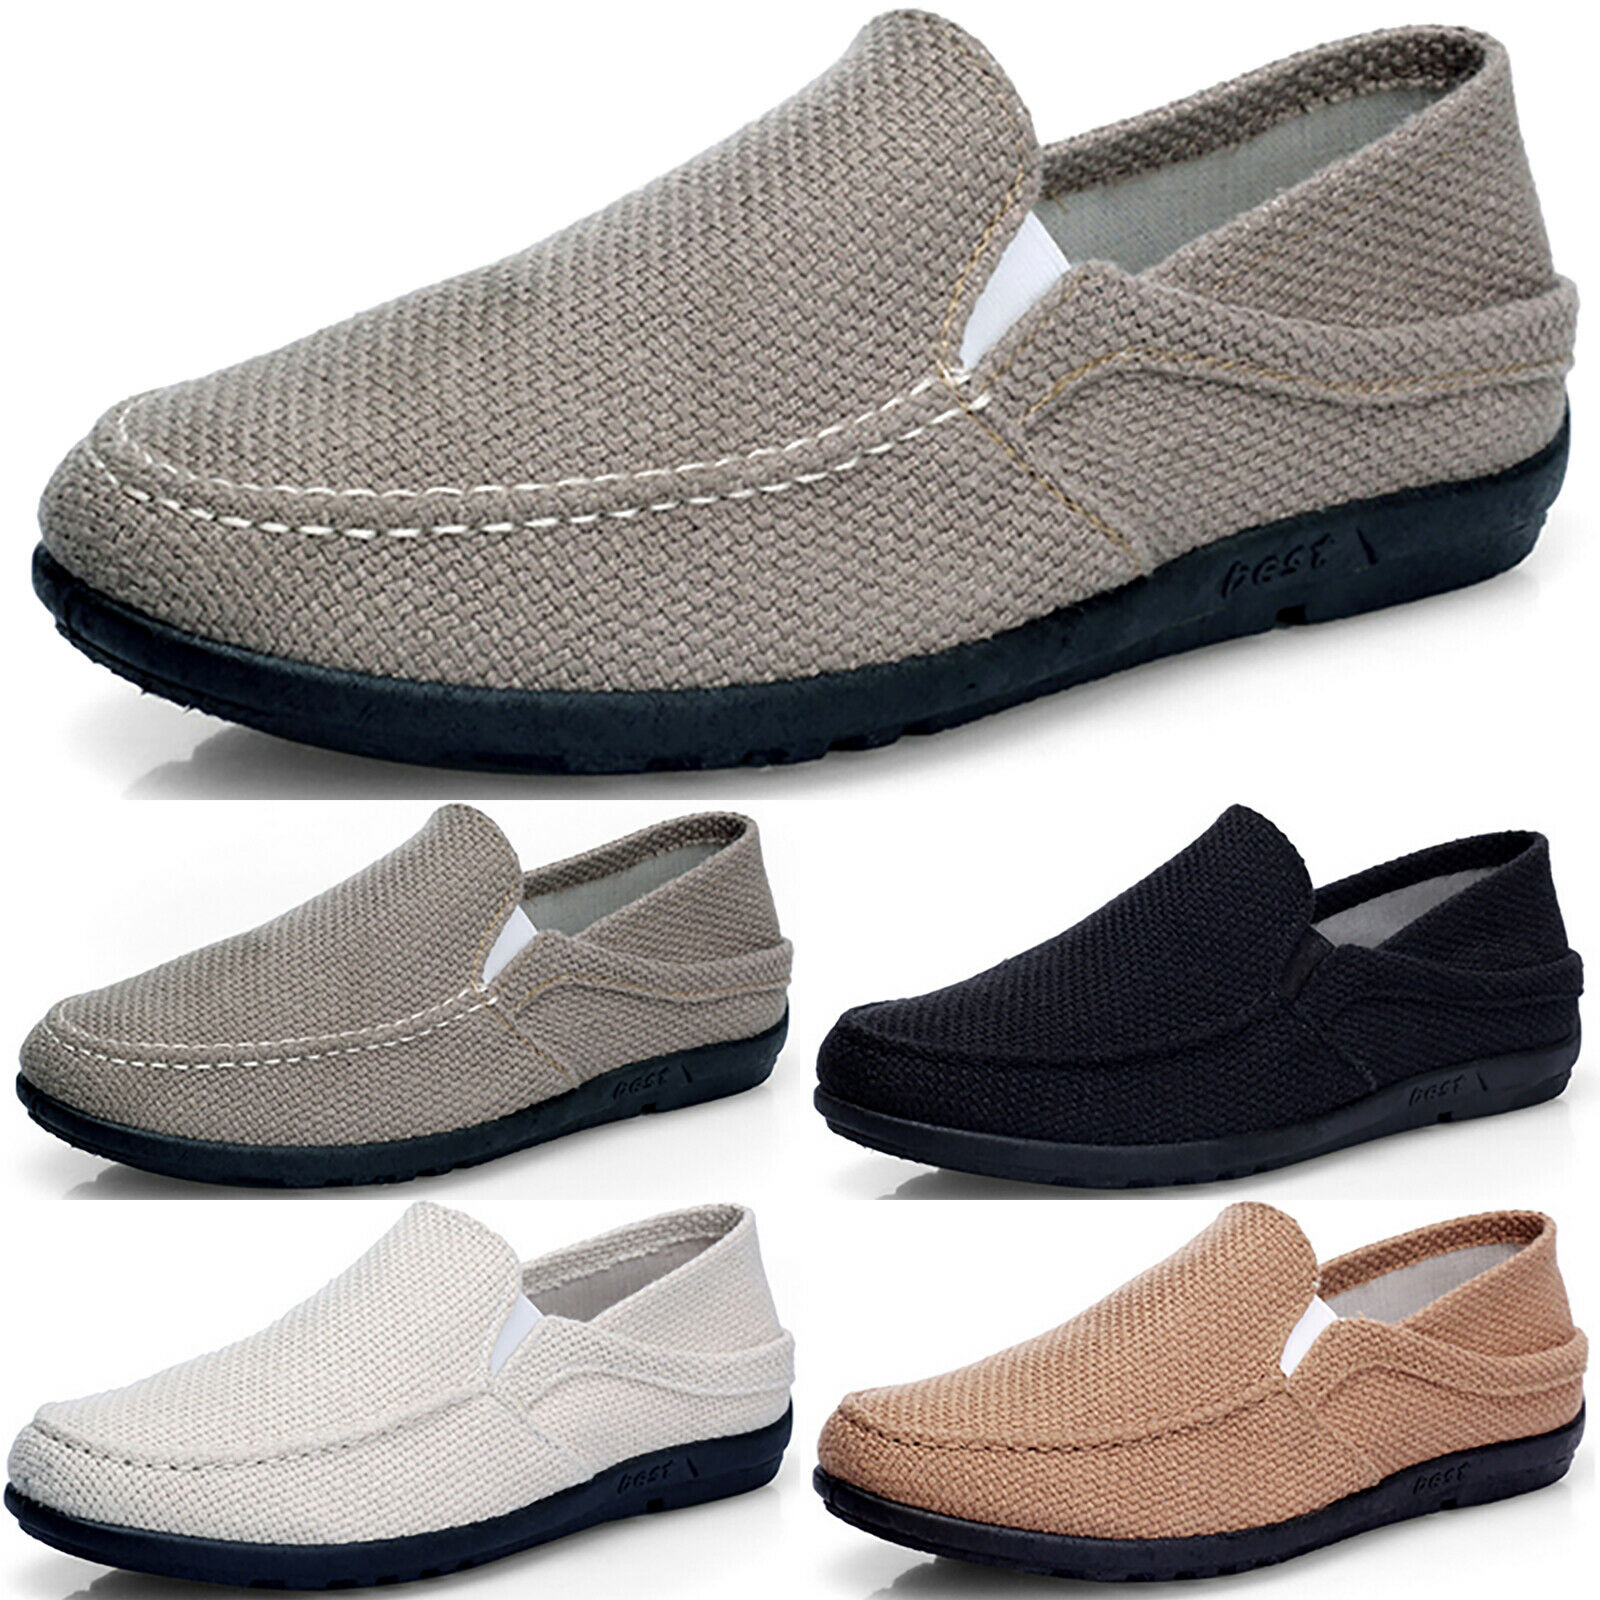 Men's Casual Driving Shoes Slip On Canvas Loafers Moccasins Smart Flats Shoes US